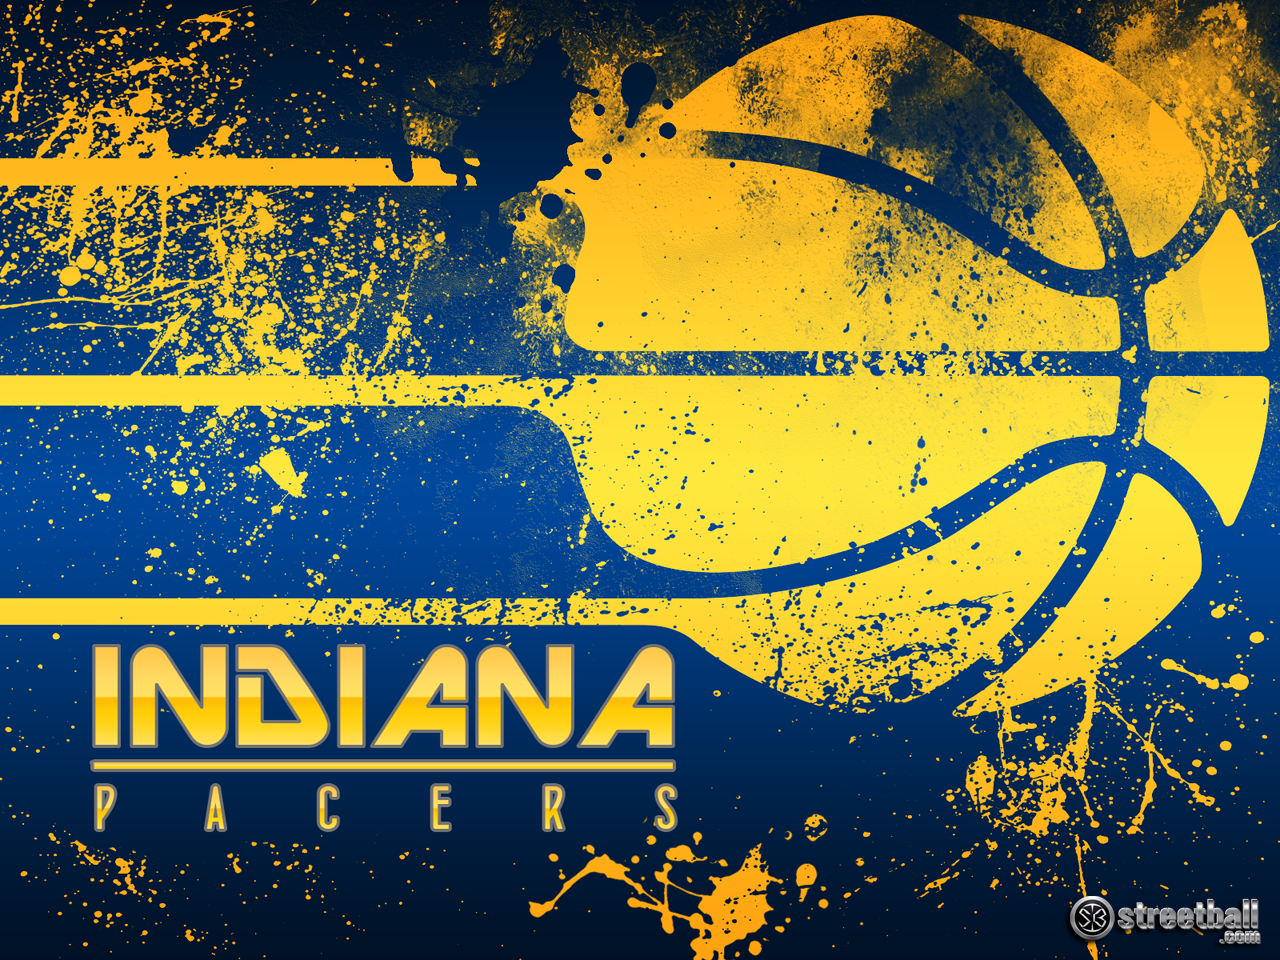 Indiana Pacers - NBAsports Wiki